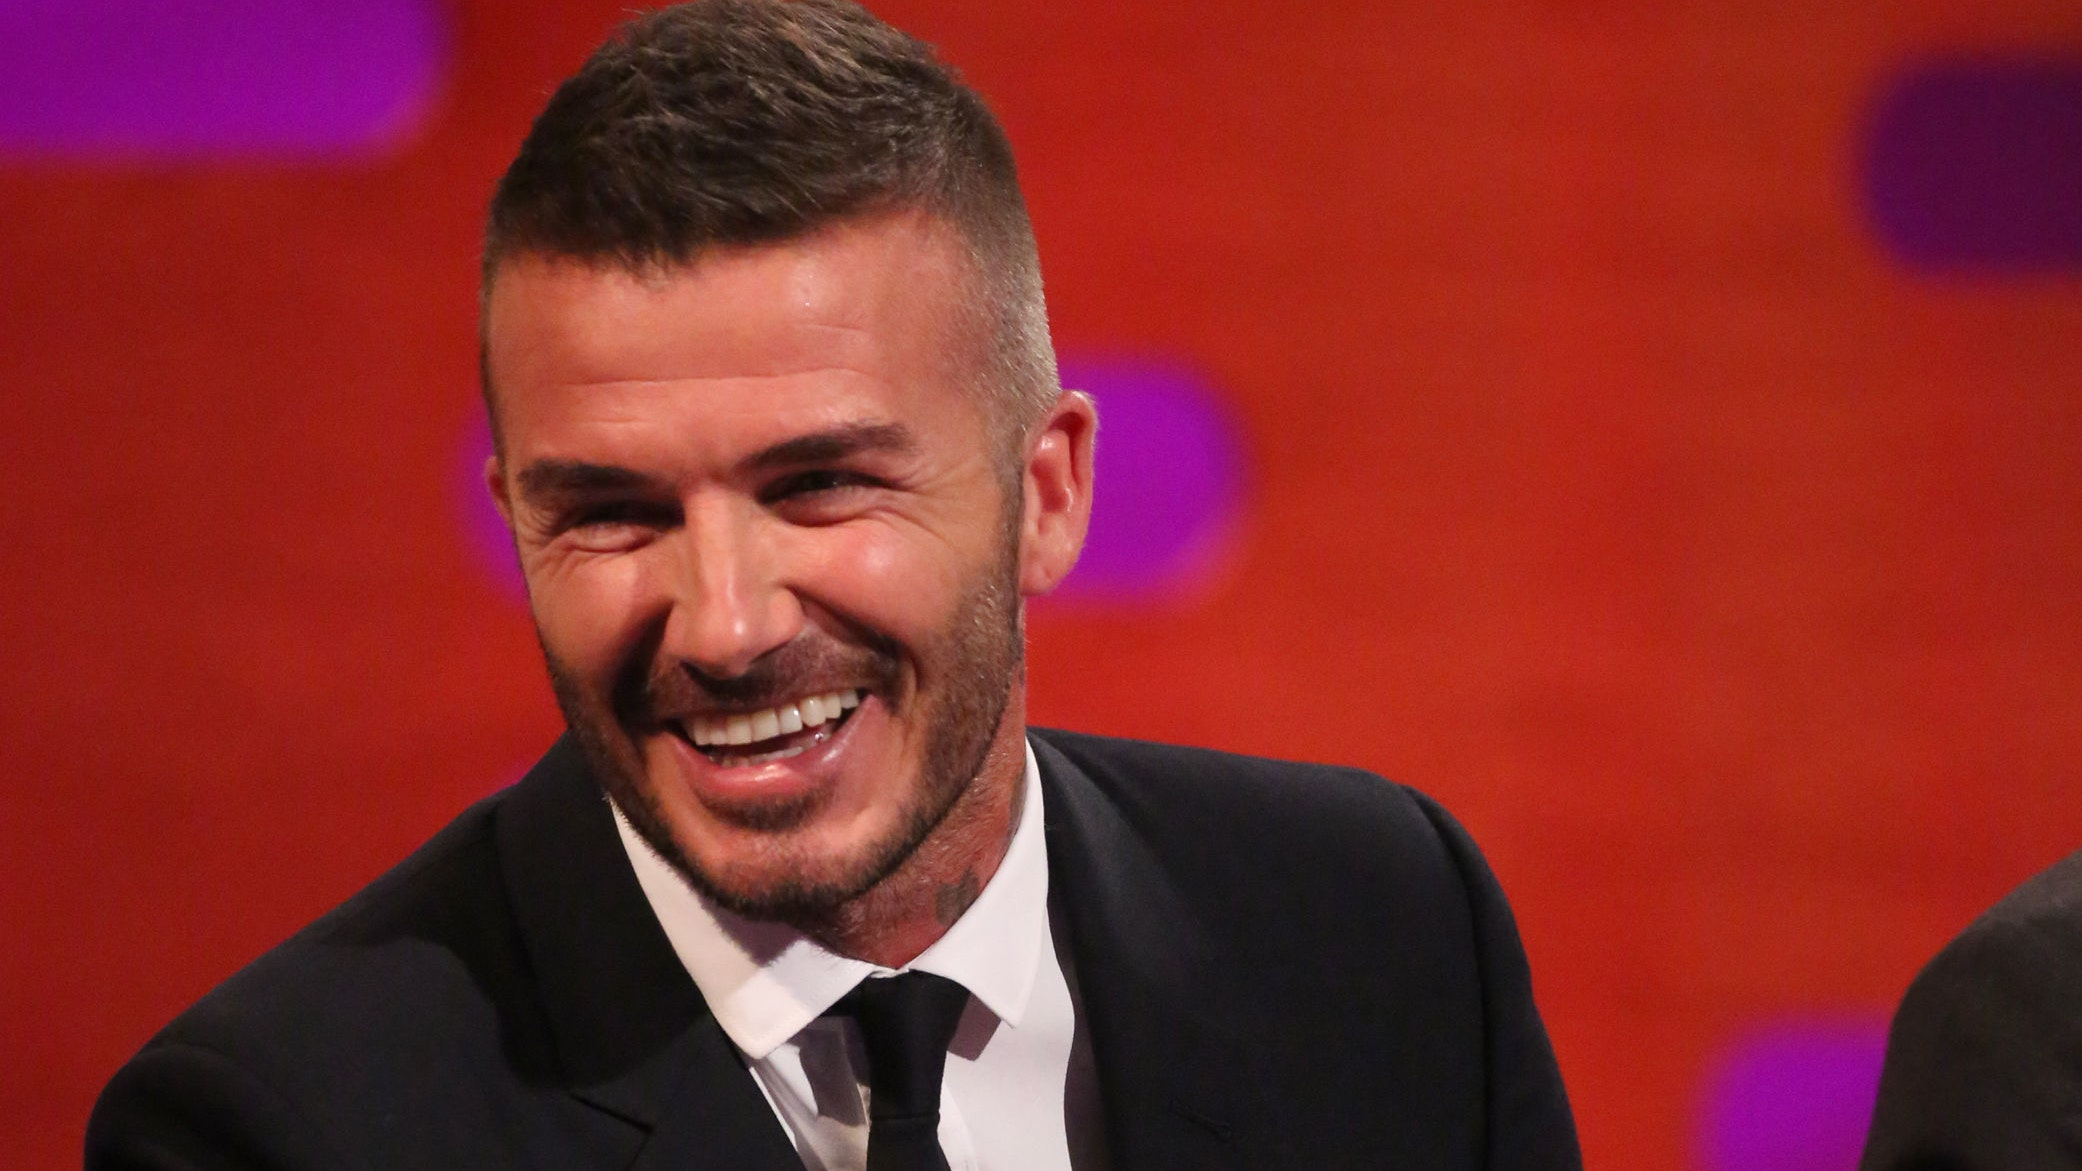 David Beckham to demand front cover apology for ridiculous' affair claims